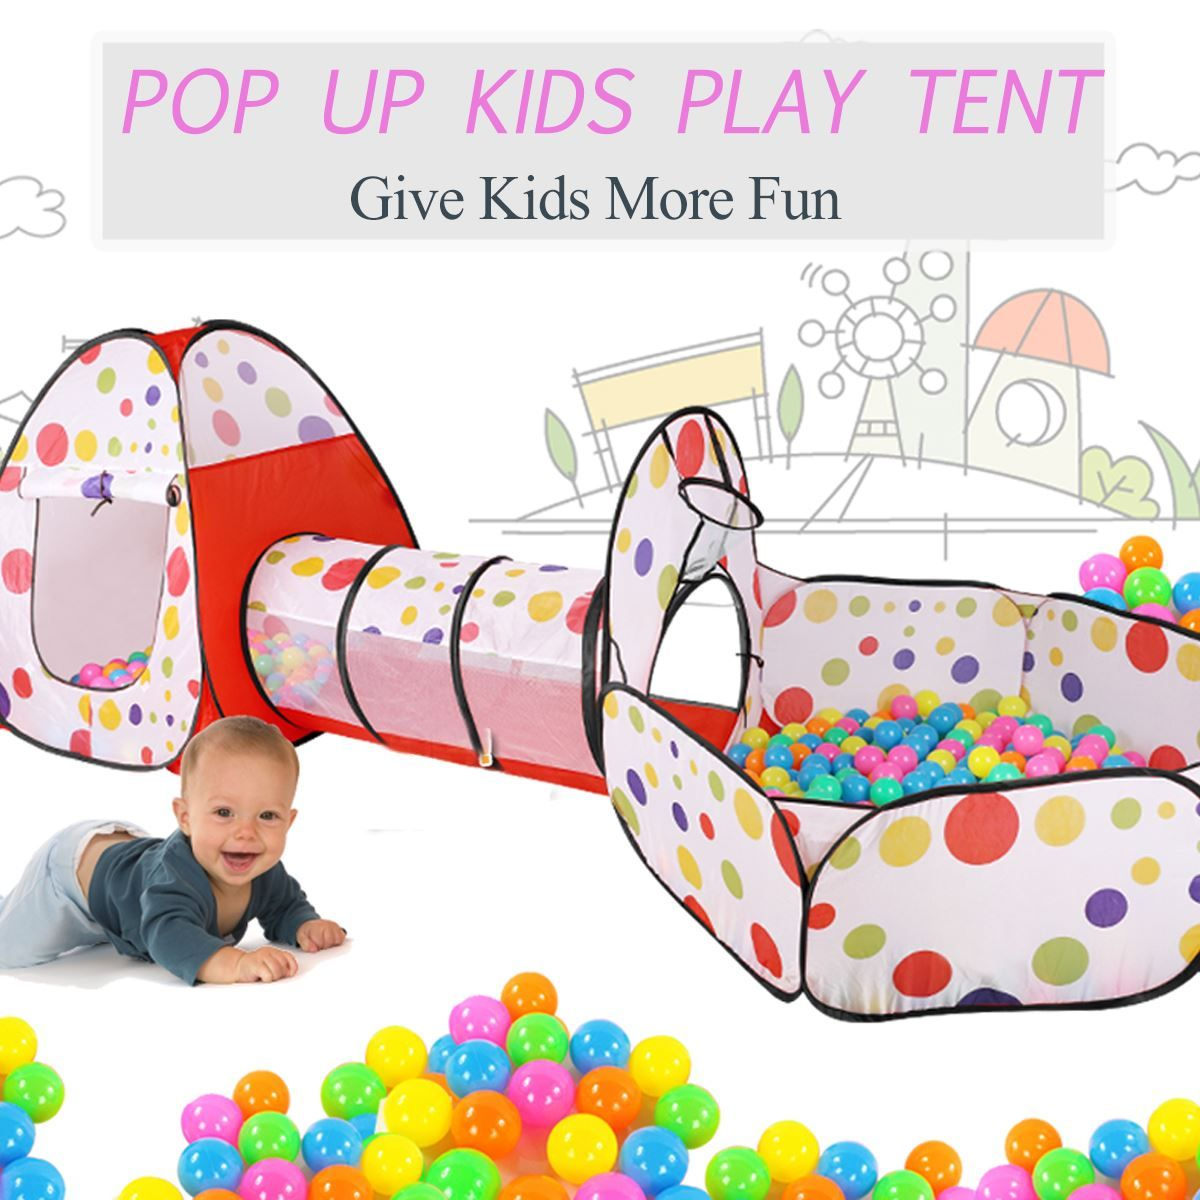 3 in 1 Pop Up Play Tent Playhouse Tunnel Ball Pit Baby Kids Play Folding Toy Indoor Outdoor Playhouse Toy Gift Kids